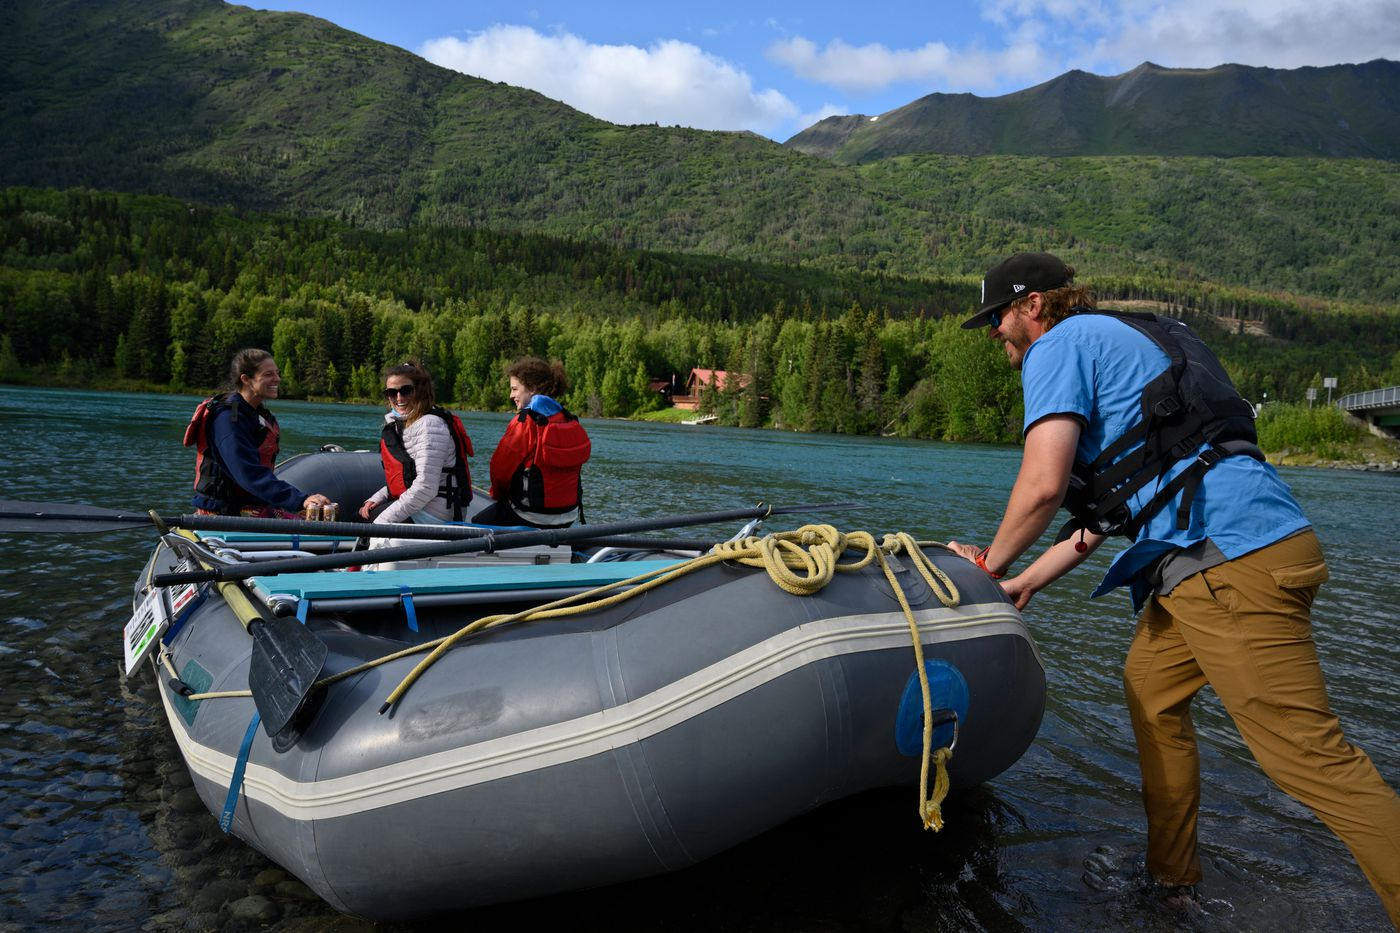 Austin Klopstein, a river guide for Alaska River Adventures, takes clients for a float on the Kenai River. Klopstein served as an operations coordinator for Cooper Landing Emergency Services during the Swan Lake Fire. (Marc Lester / ADN)